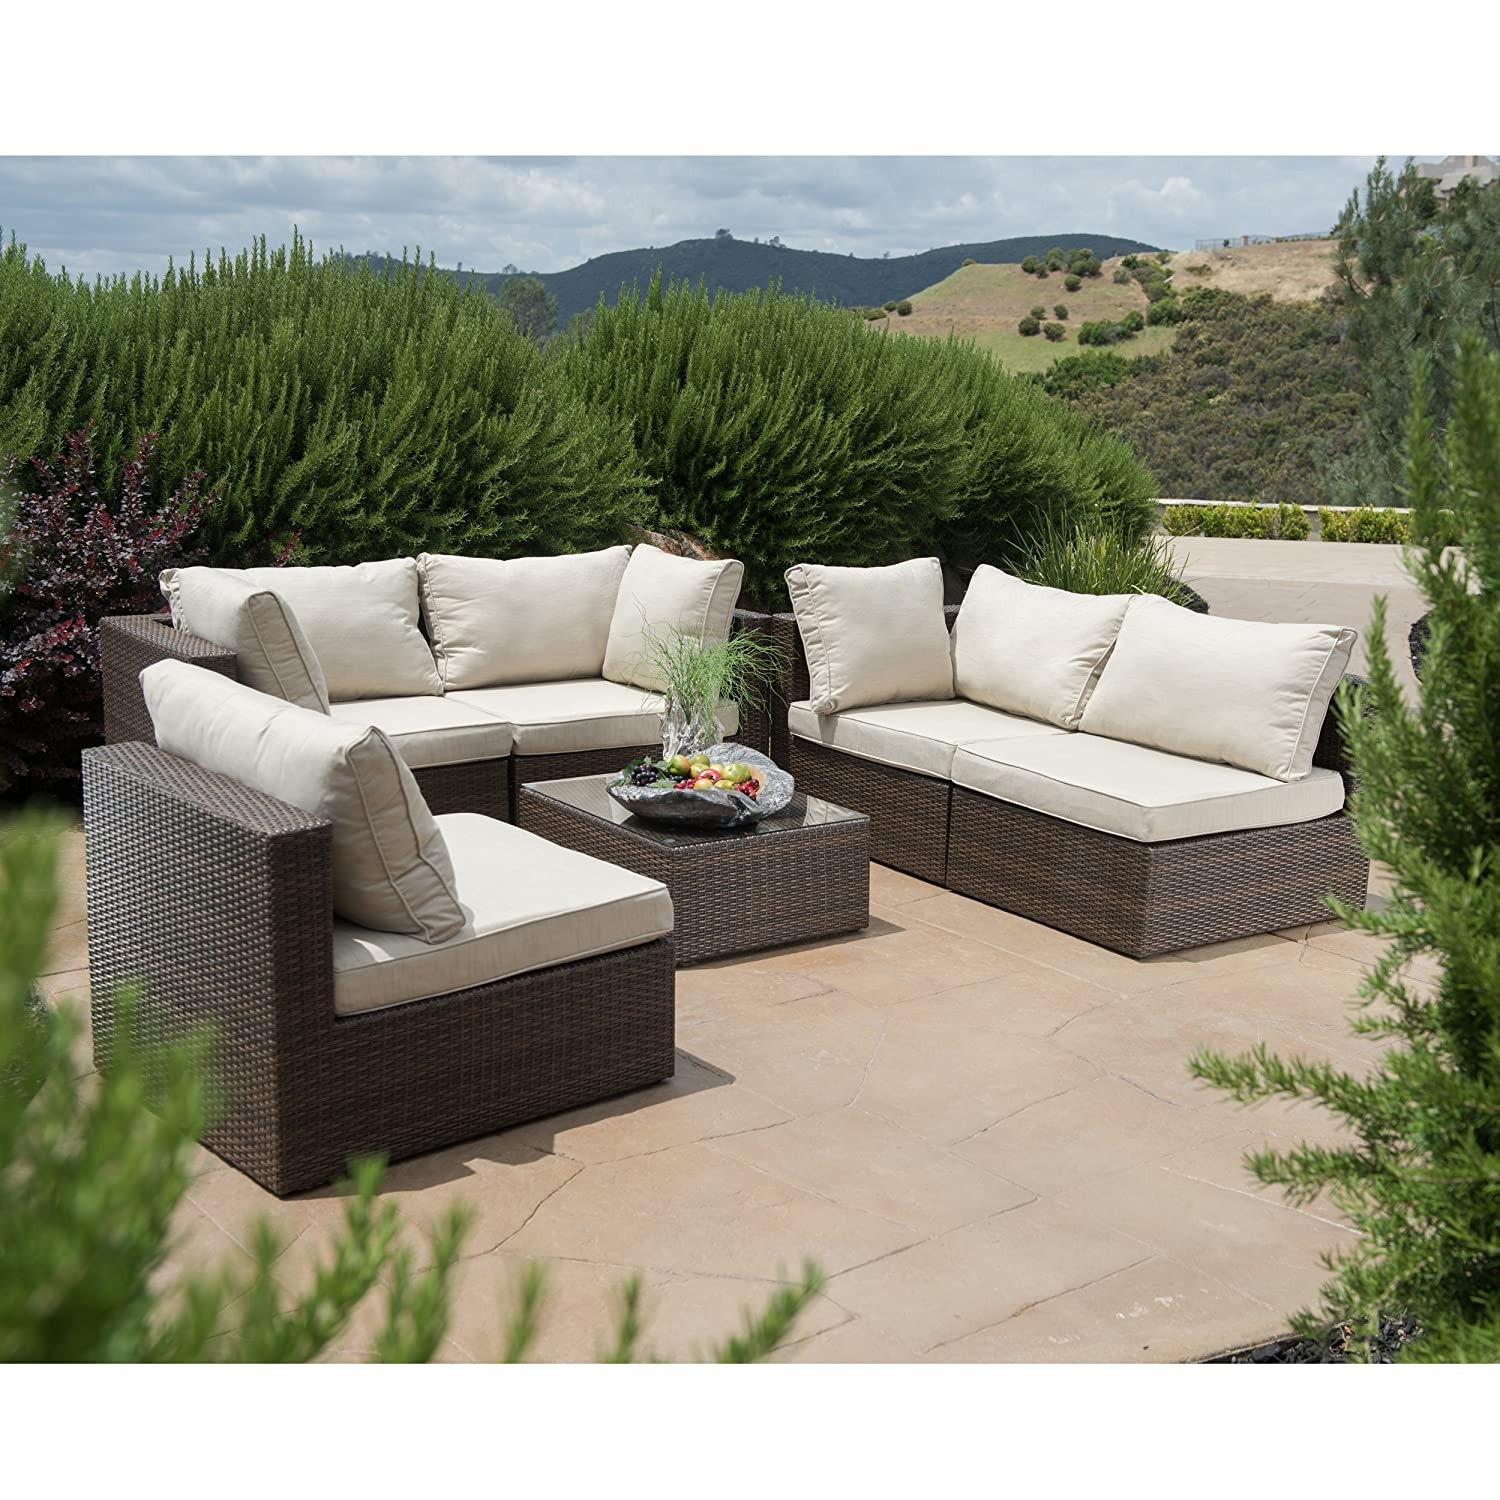 amazon seater sofa wicker best luxury sectional ca brown comfort dp couch outdoor garden patio lawn choiceproducts furniture